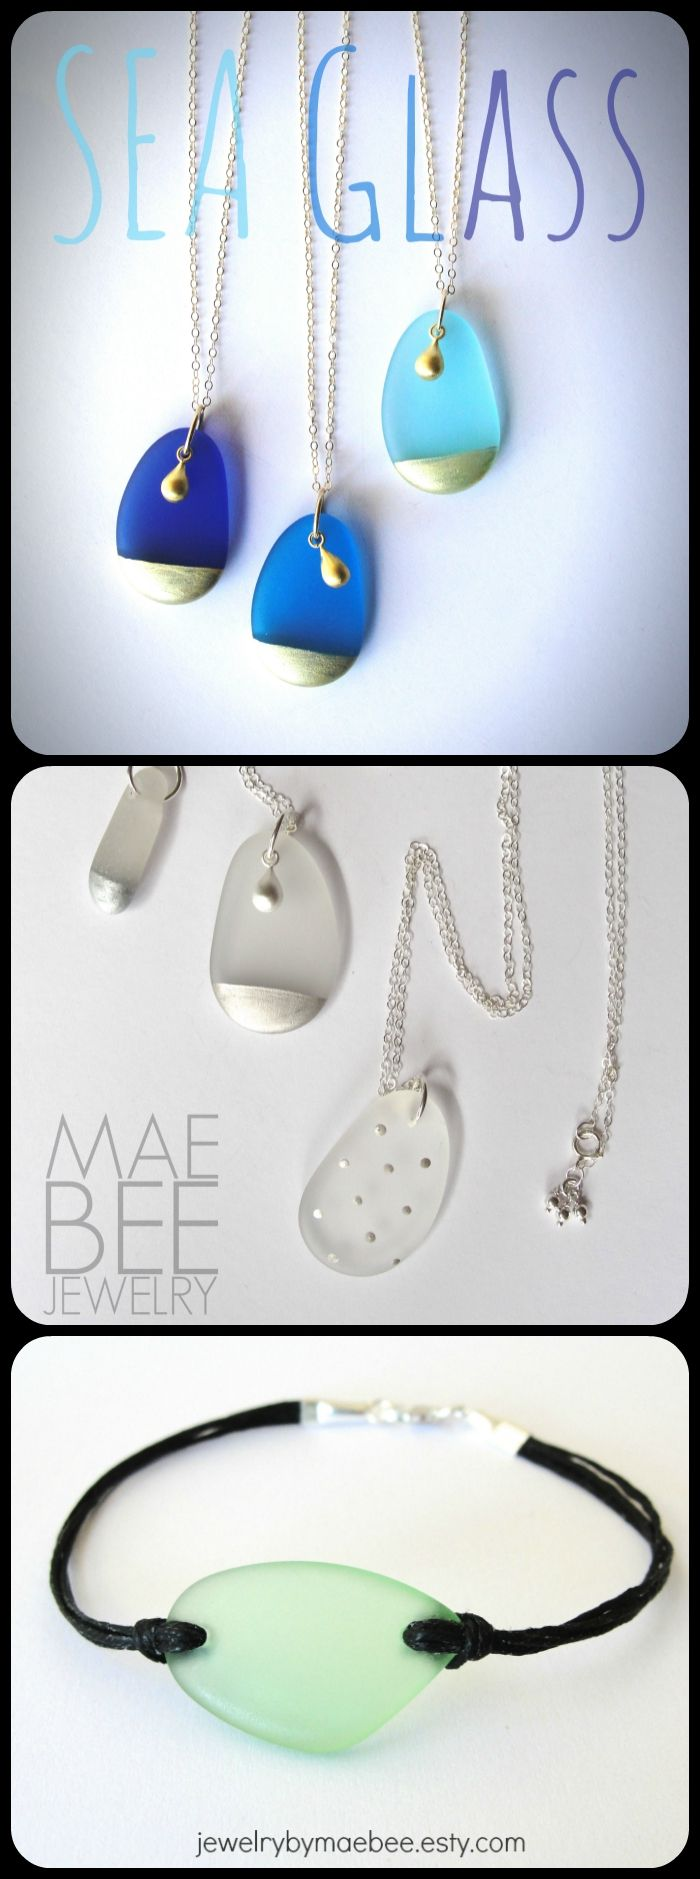 Seaglass  Necklaces and bracelets from JewelryByMaeBee on  Etsy   sfetsy www jewelrybymaebee etsy com